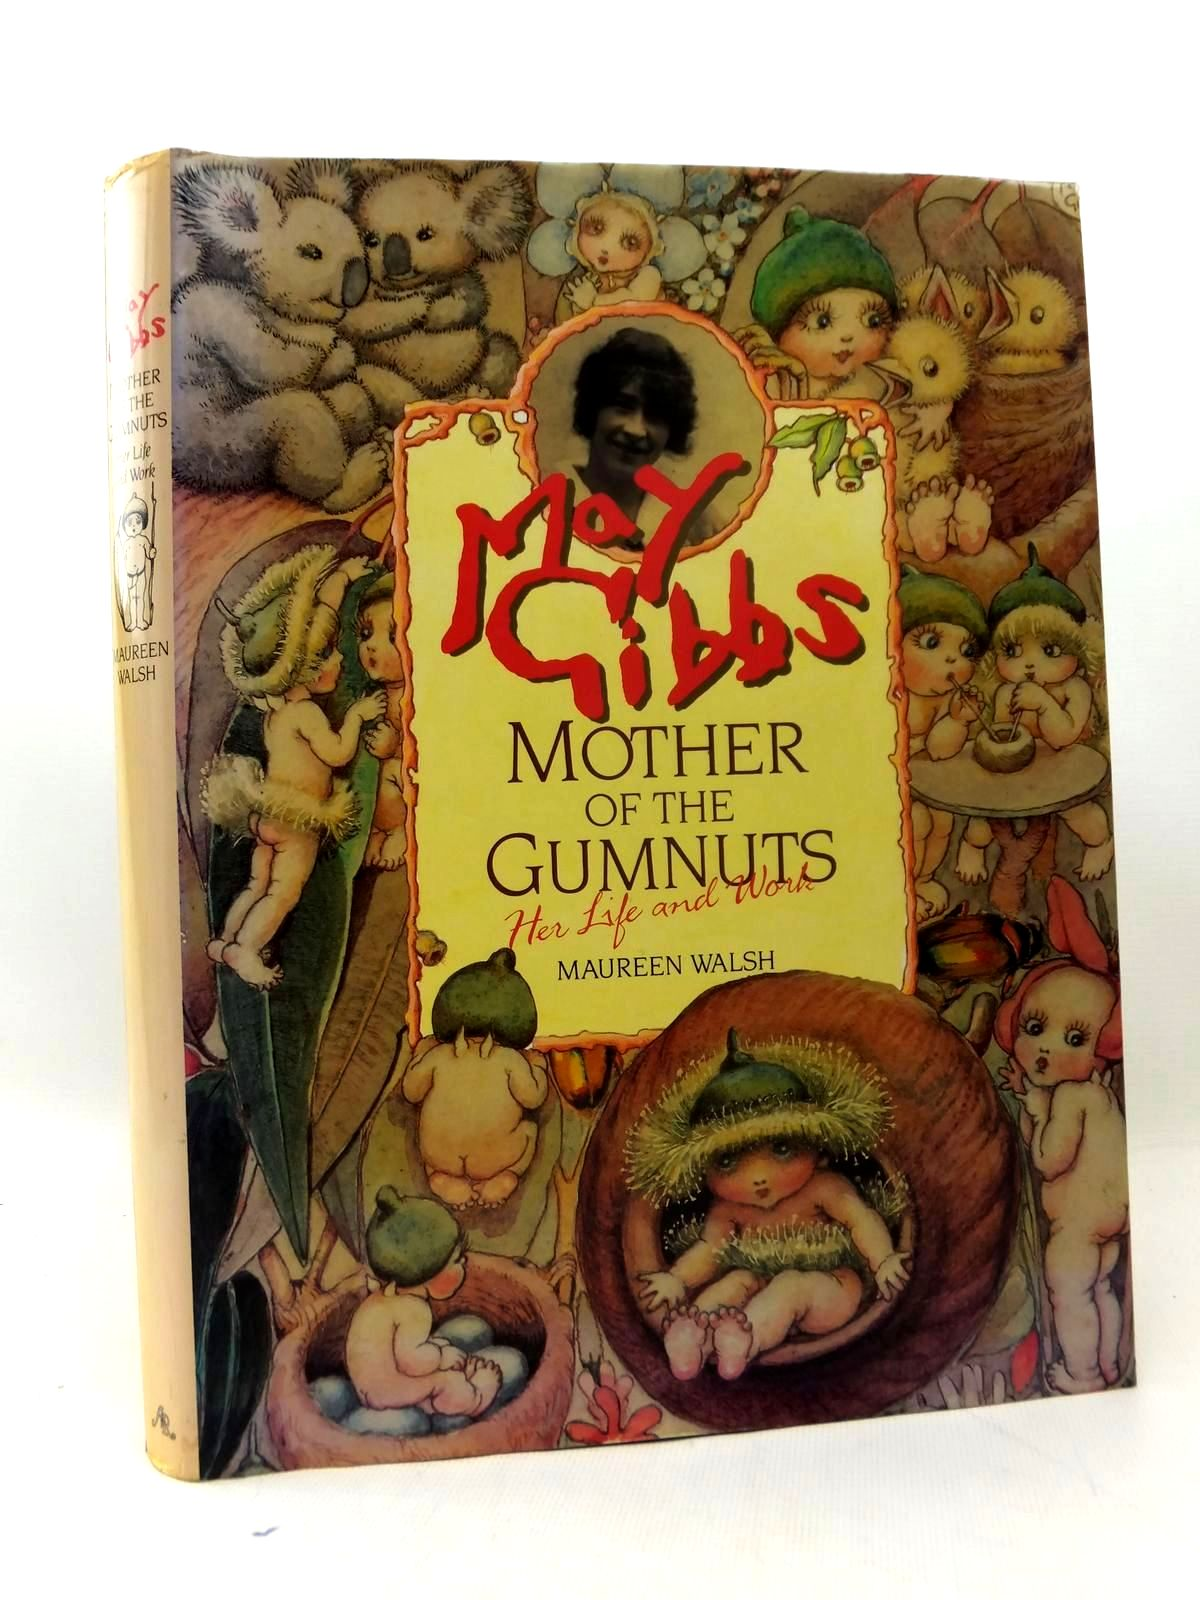 Photo of MAY GIBBS MOTHER OF THE GUMNUTS - HER LIFE AND WORK written by Walsh, Maureen illustrated by Gibbs, May published by Angus & Robertson Publishers (STOCK CODE: 1208664)  for sale by Stella & Rose's Books